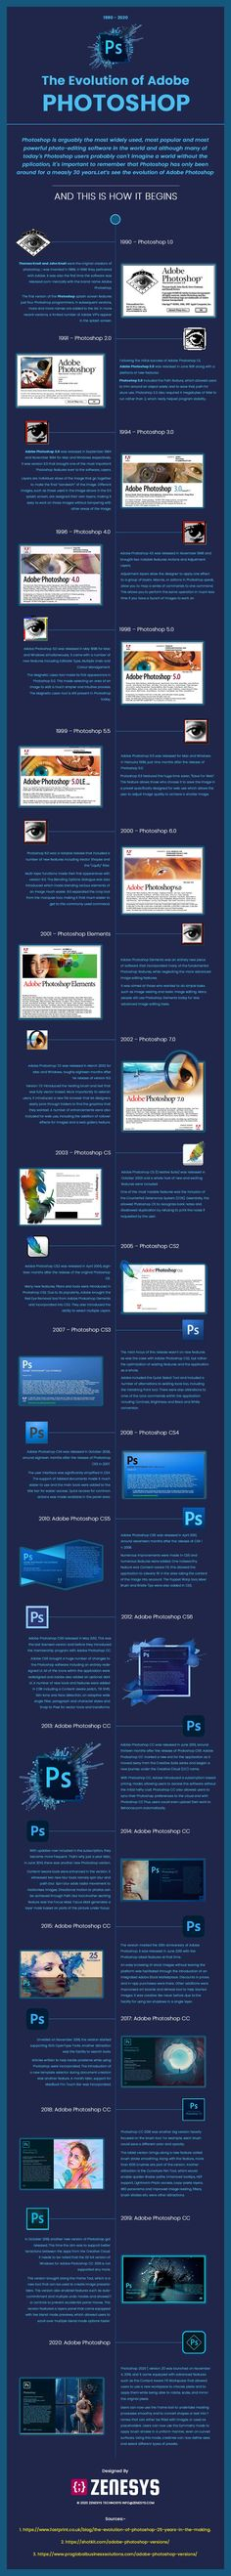 Adobe Photoshop: The Timeline #infographic #software #technology #computer #graphicdesign Photoshop Timeline, Photoshop Software, Adobe Photoshop, Image Editing, Video Editing, Photo Editing, Timeline Infographic, Infographics, Infographic Software